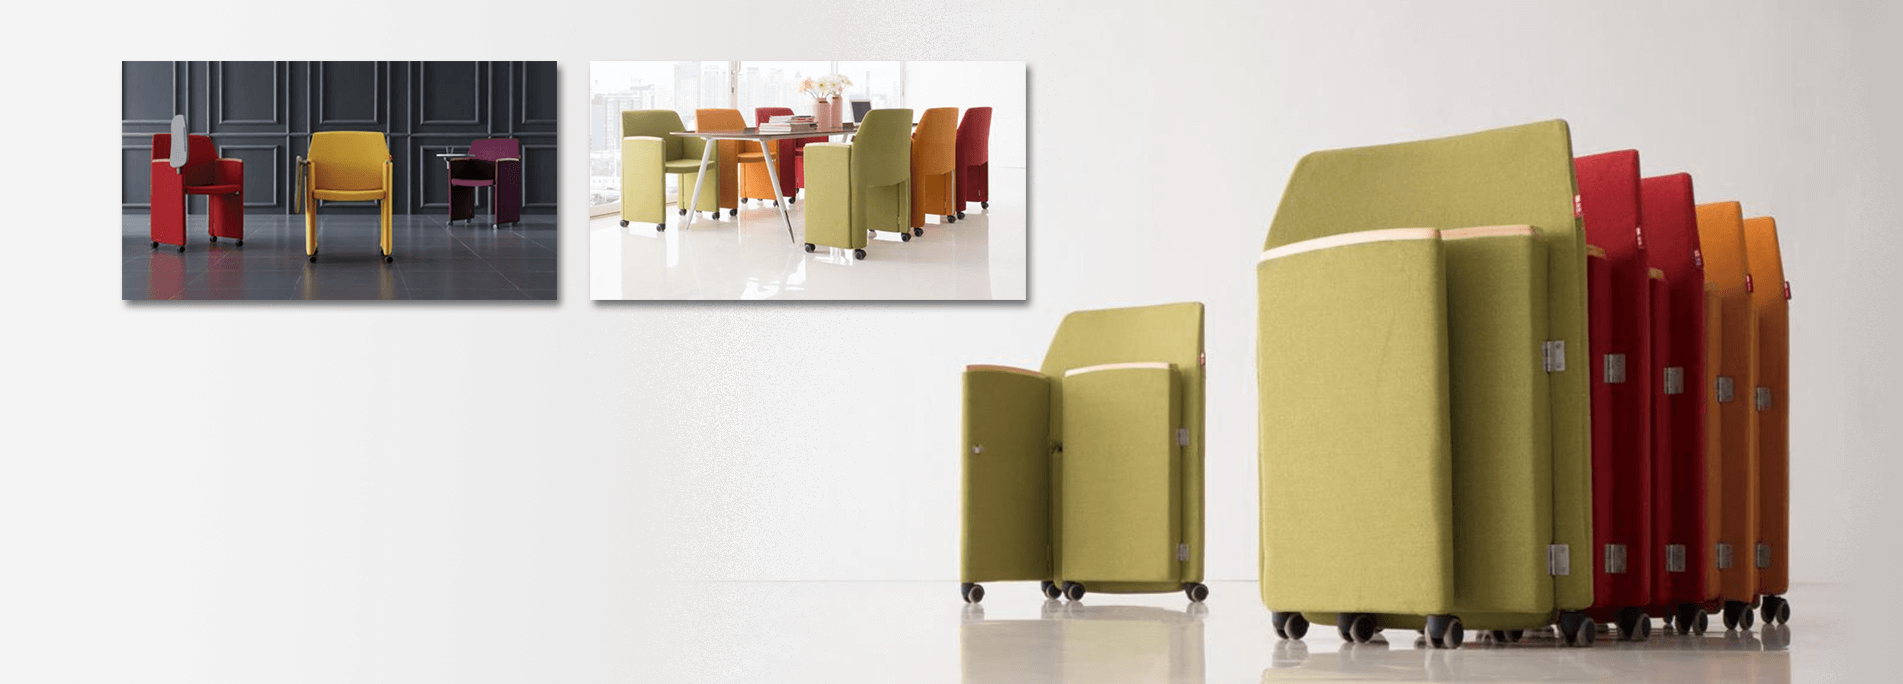 Foldable Seats for better Space Management